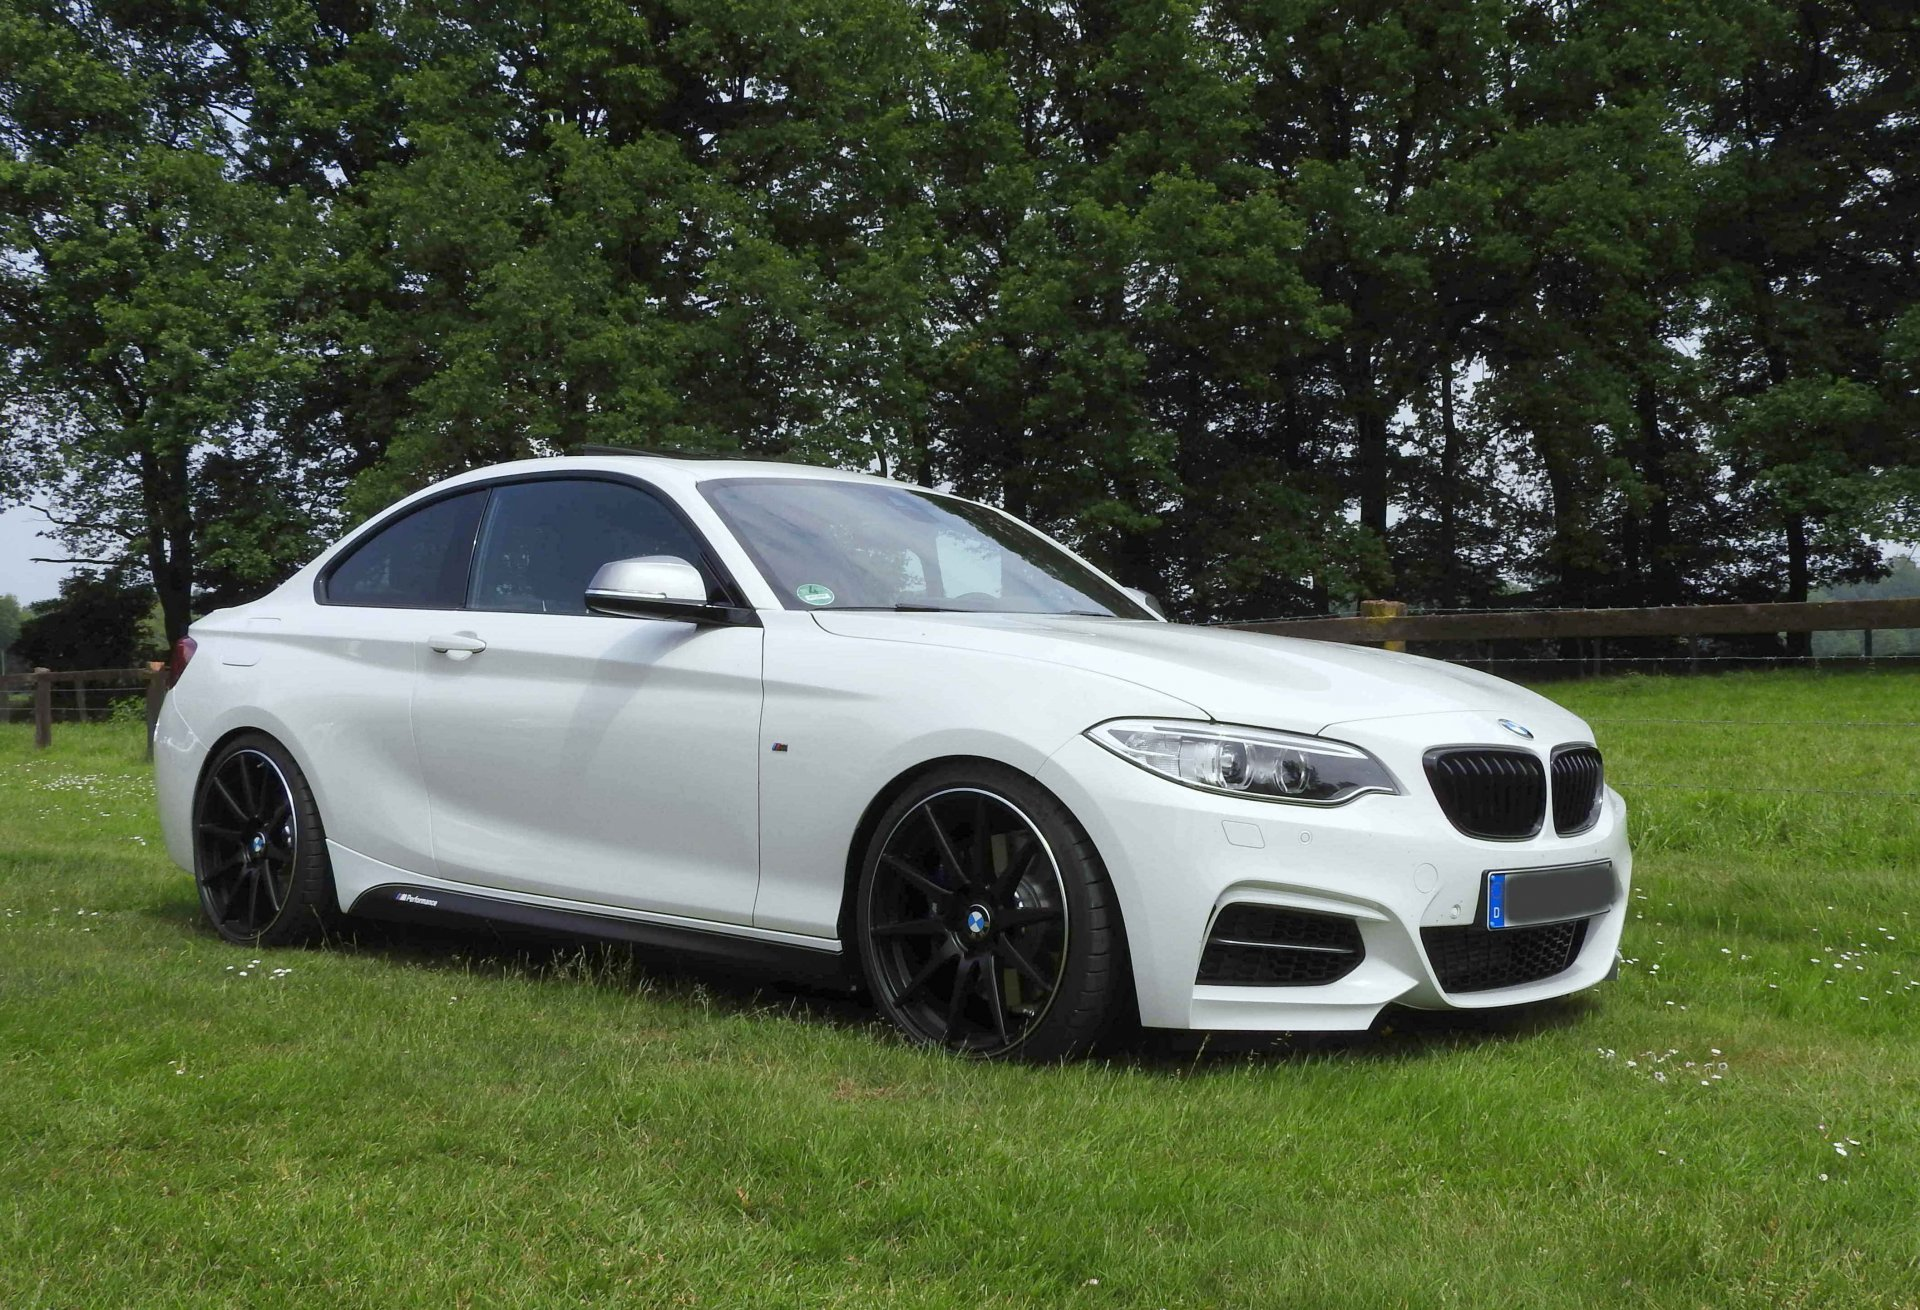 m235i update felgen fahrwerk bmw 1er 2er forum community. Black Bedroom Furniture Sets. Home Design Ideas